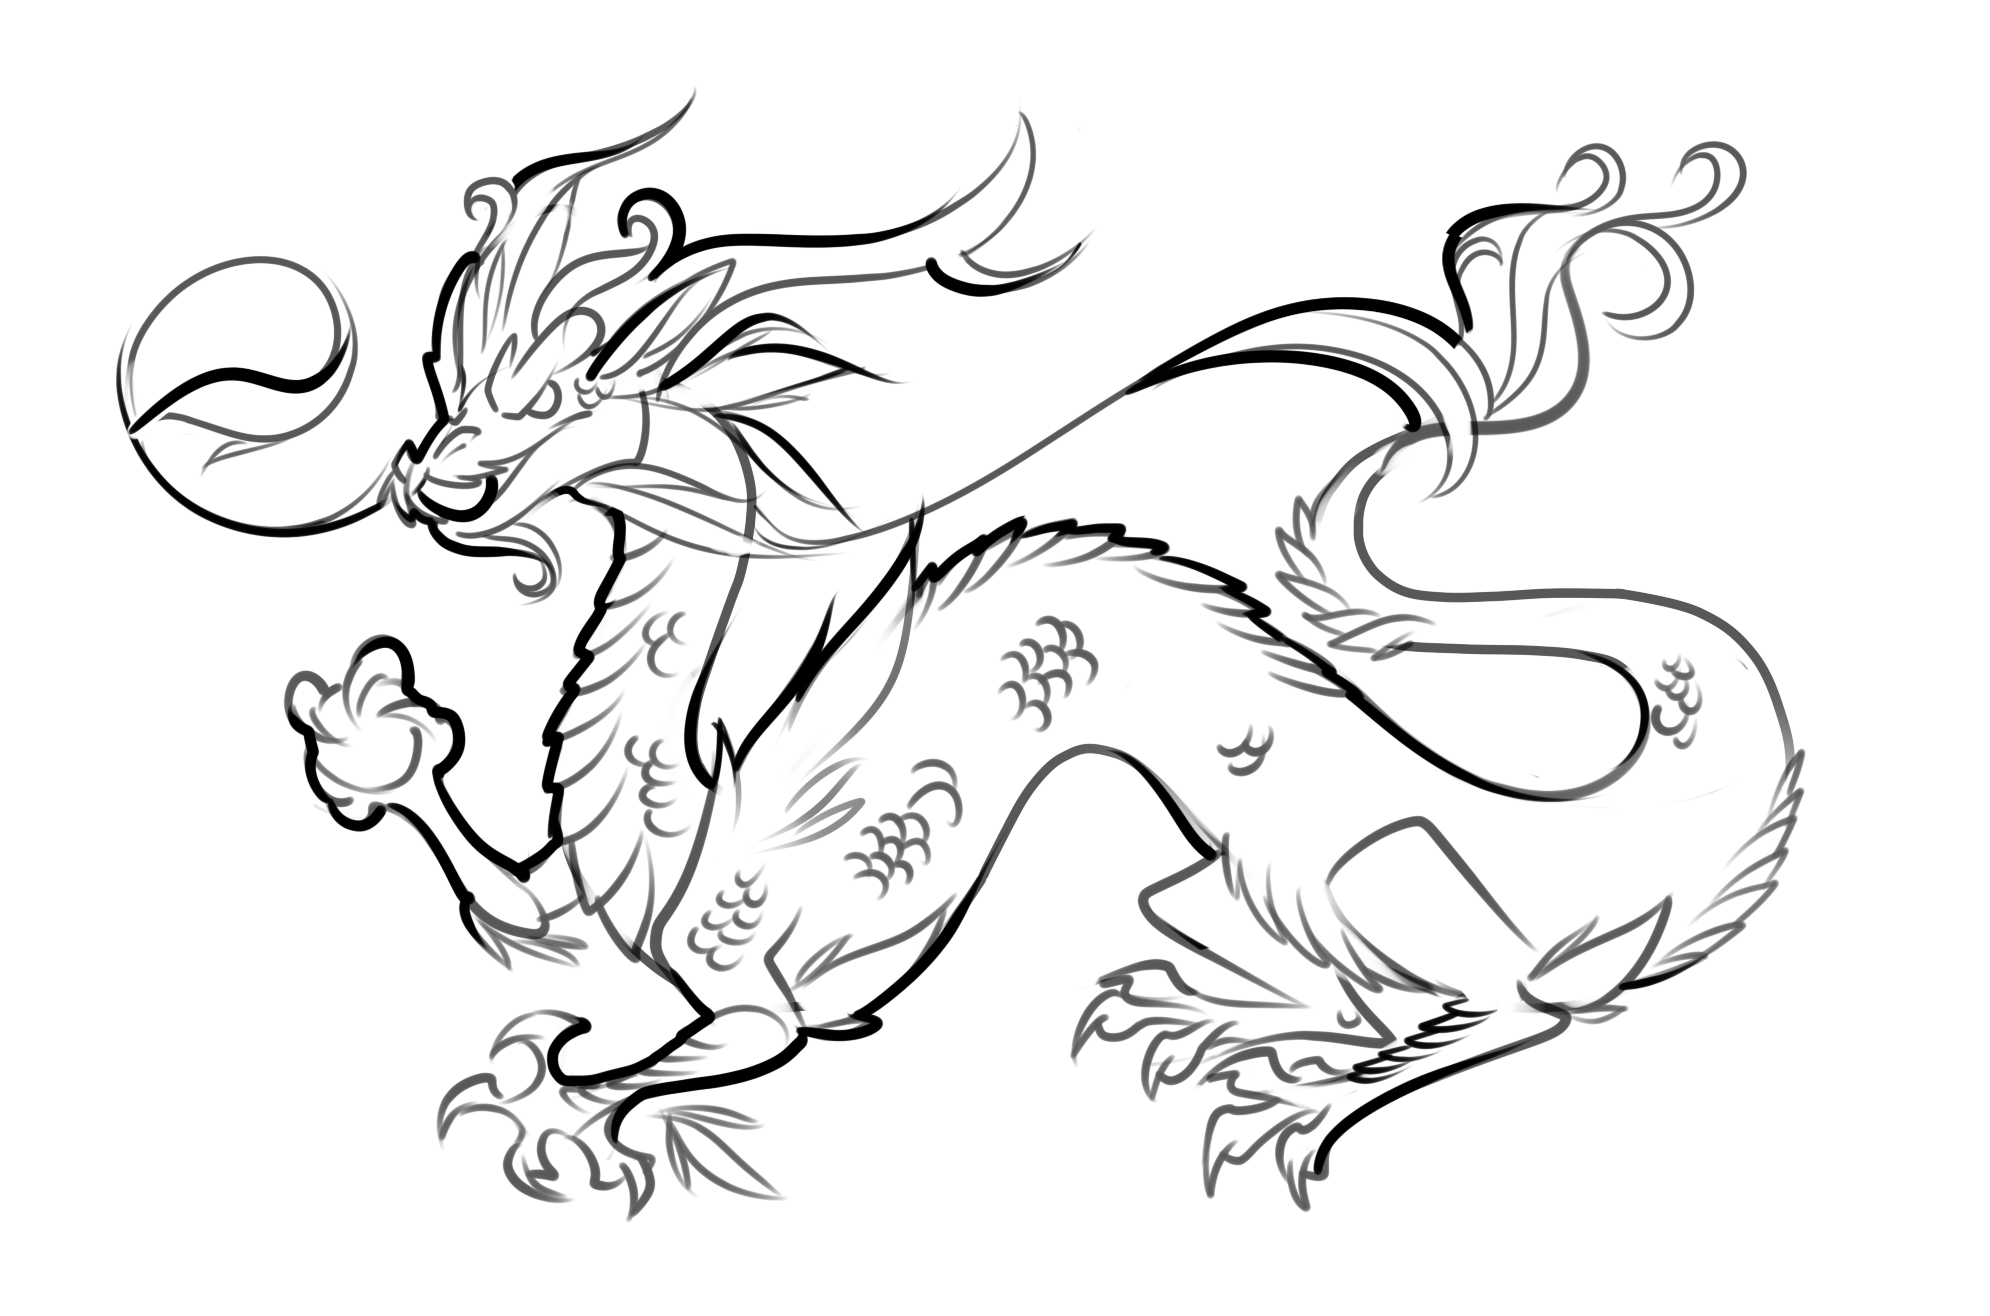 Baby Drachen Ausmalbilder : Kids Drawing Dragon At Getdrawings Com Free For Personal Use Kids